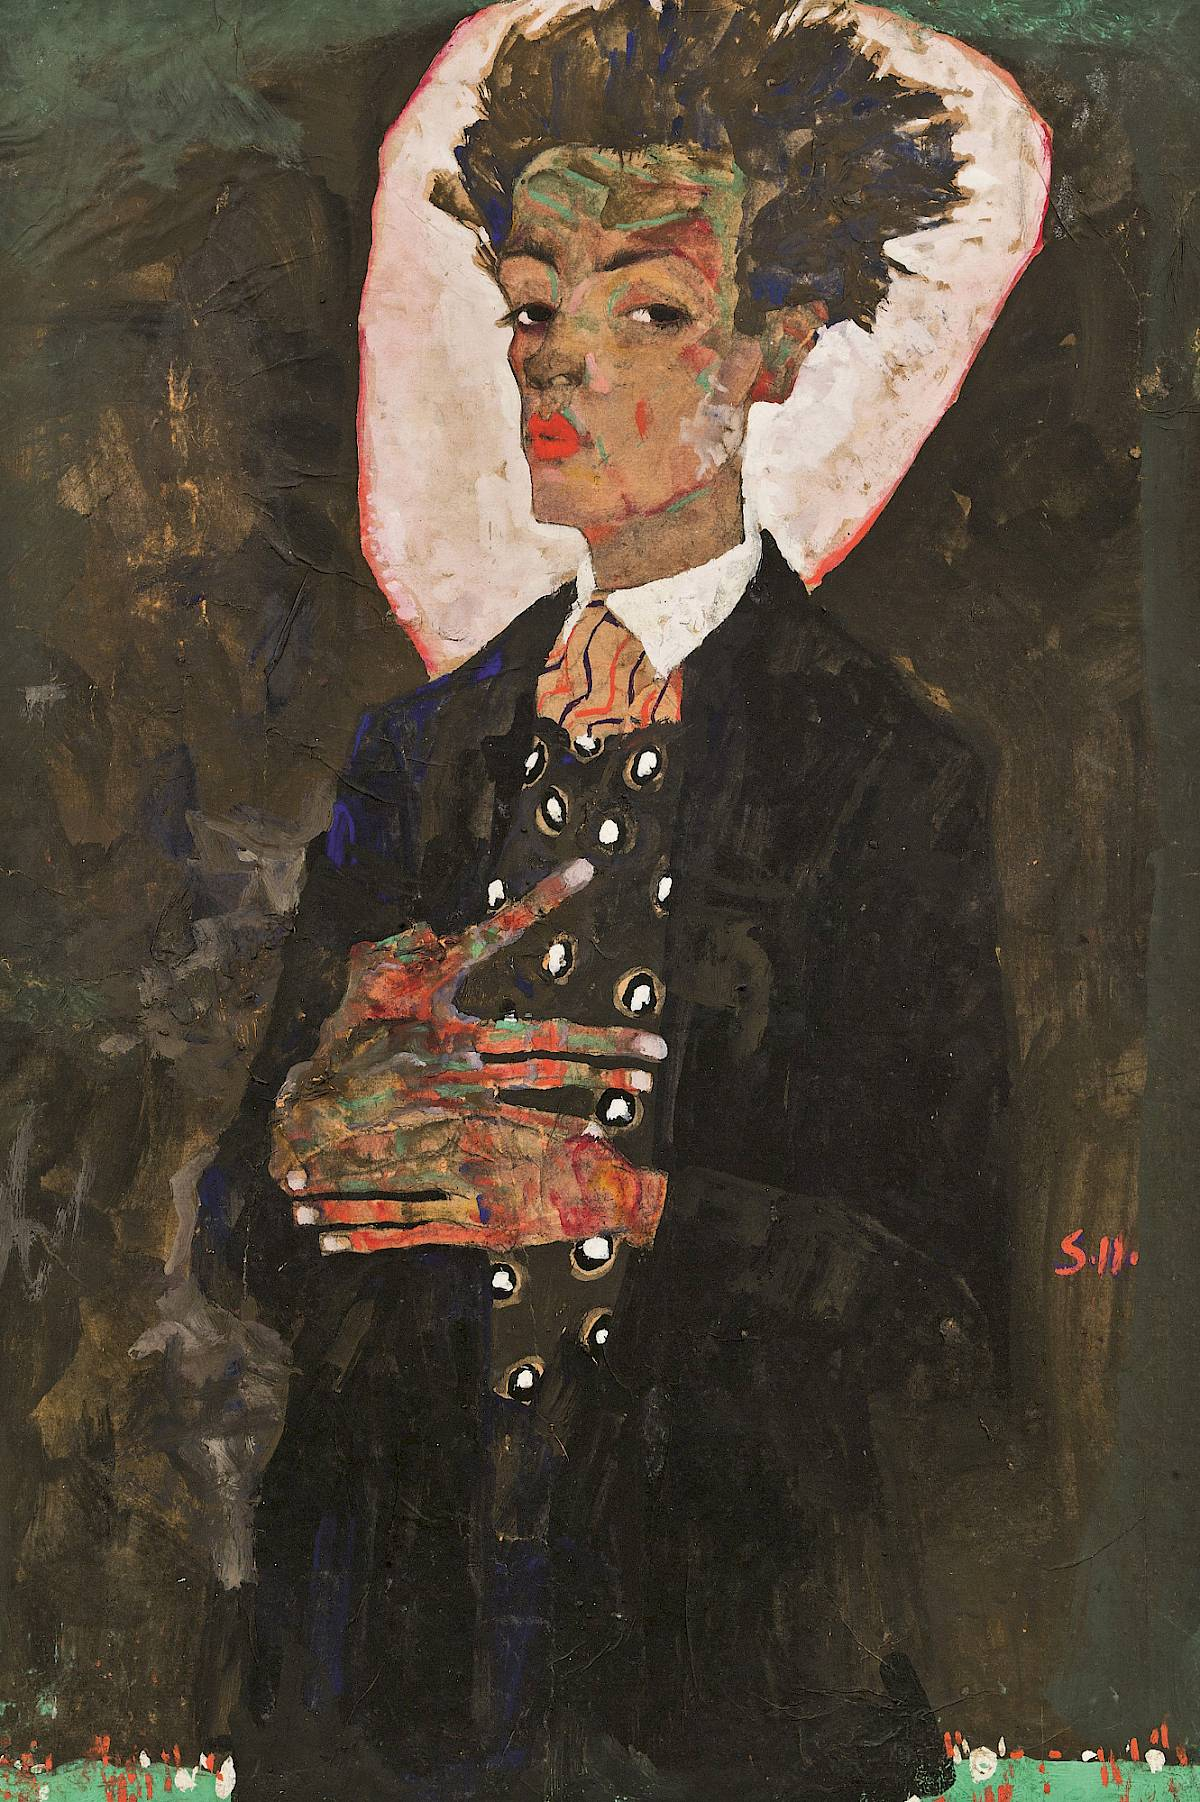 Looking forward to playing iconoclastic Austrian painter Egon Schiele in the premiere of A GLORIOUS VISION this fall!